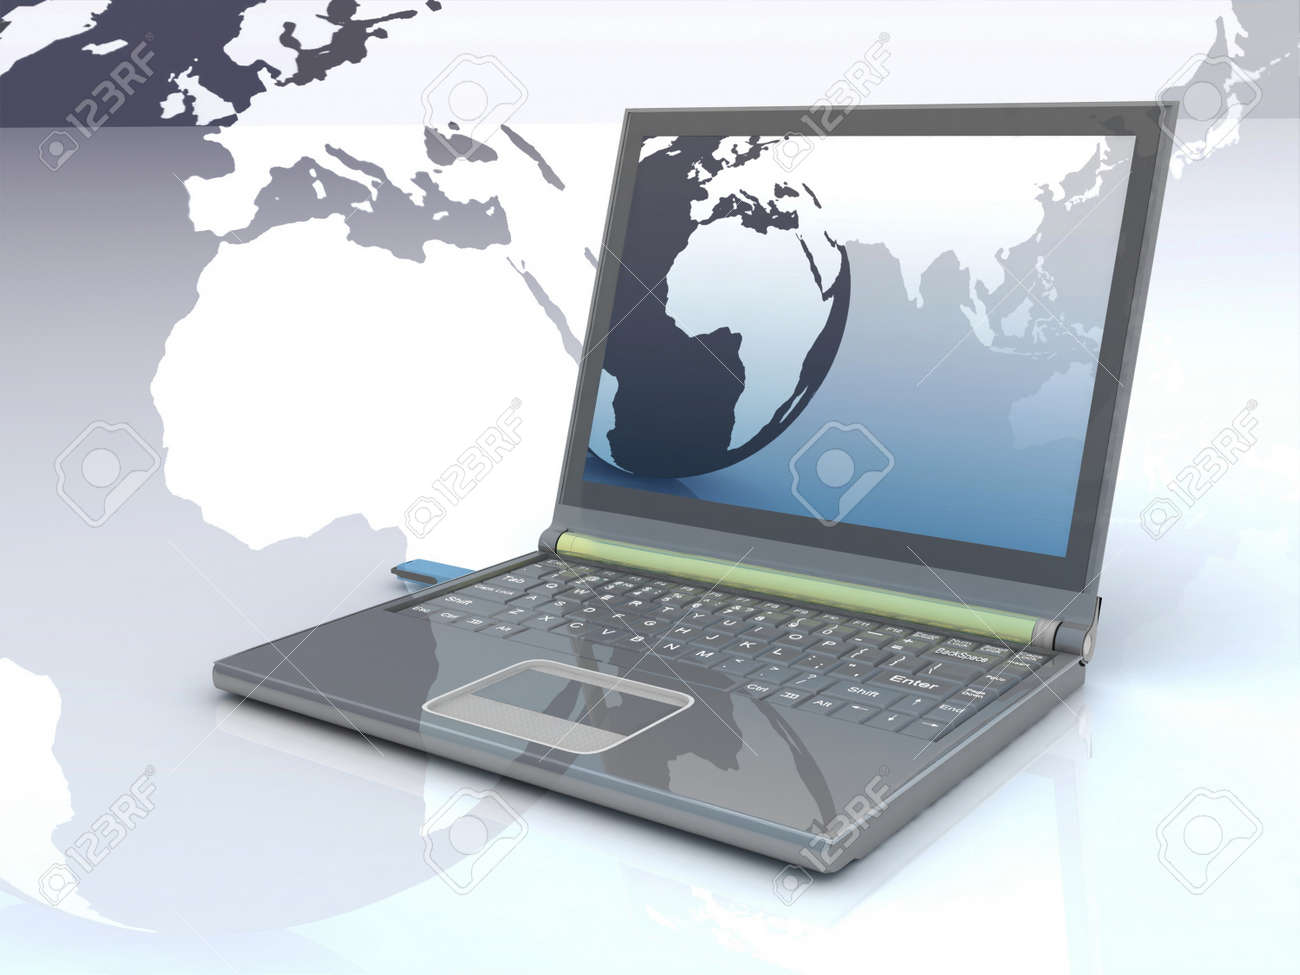 Internet Concept of global business Stock Photo - 11846211